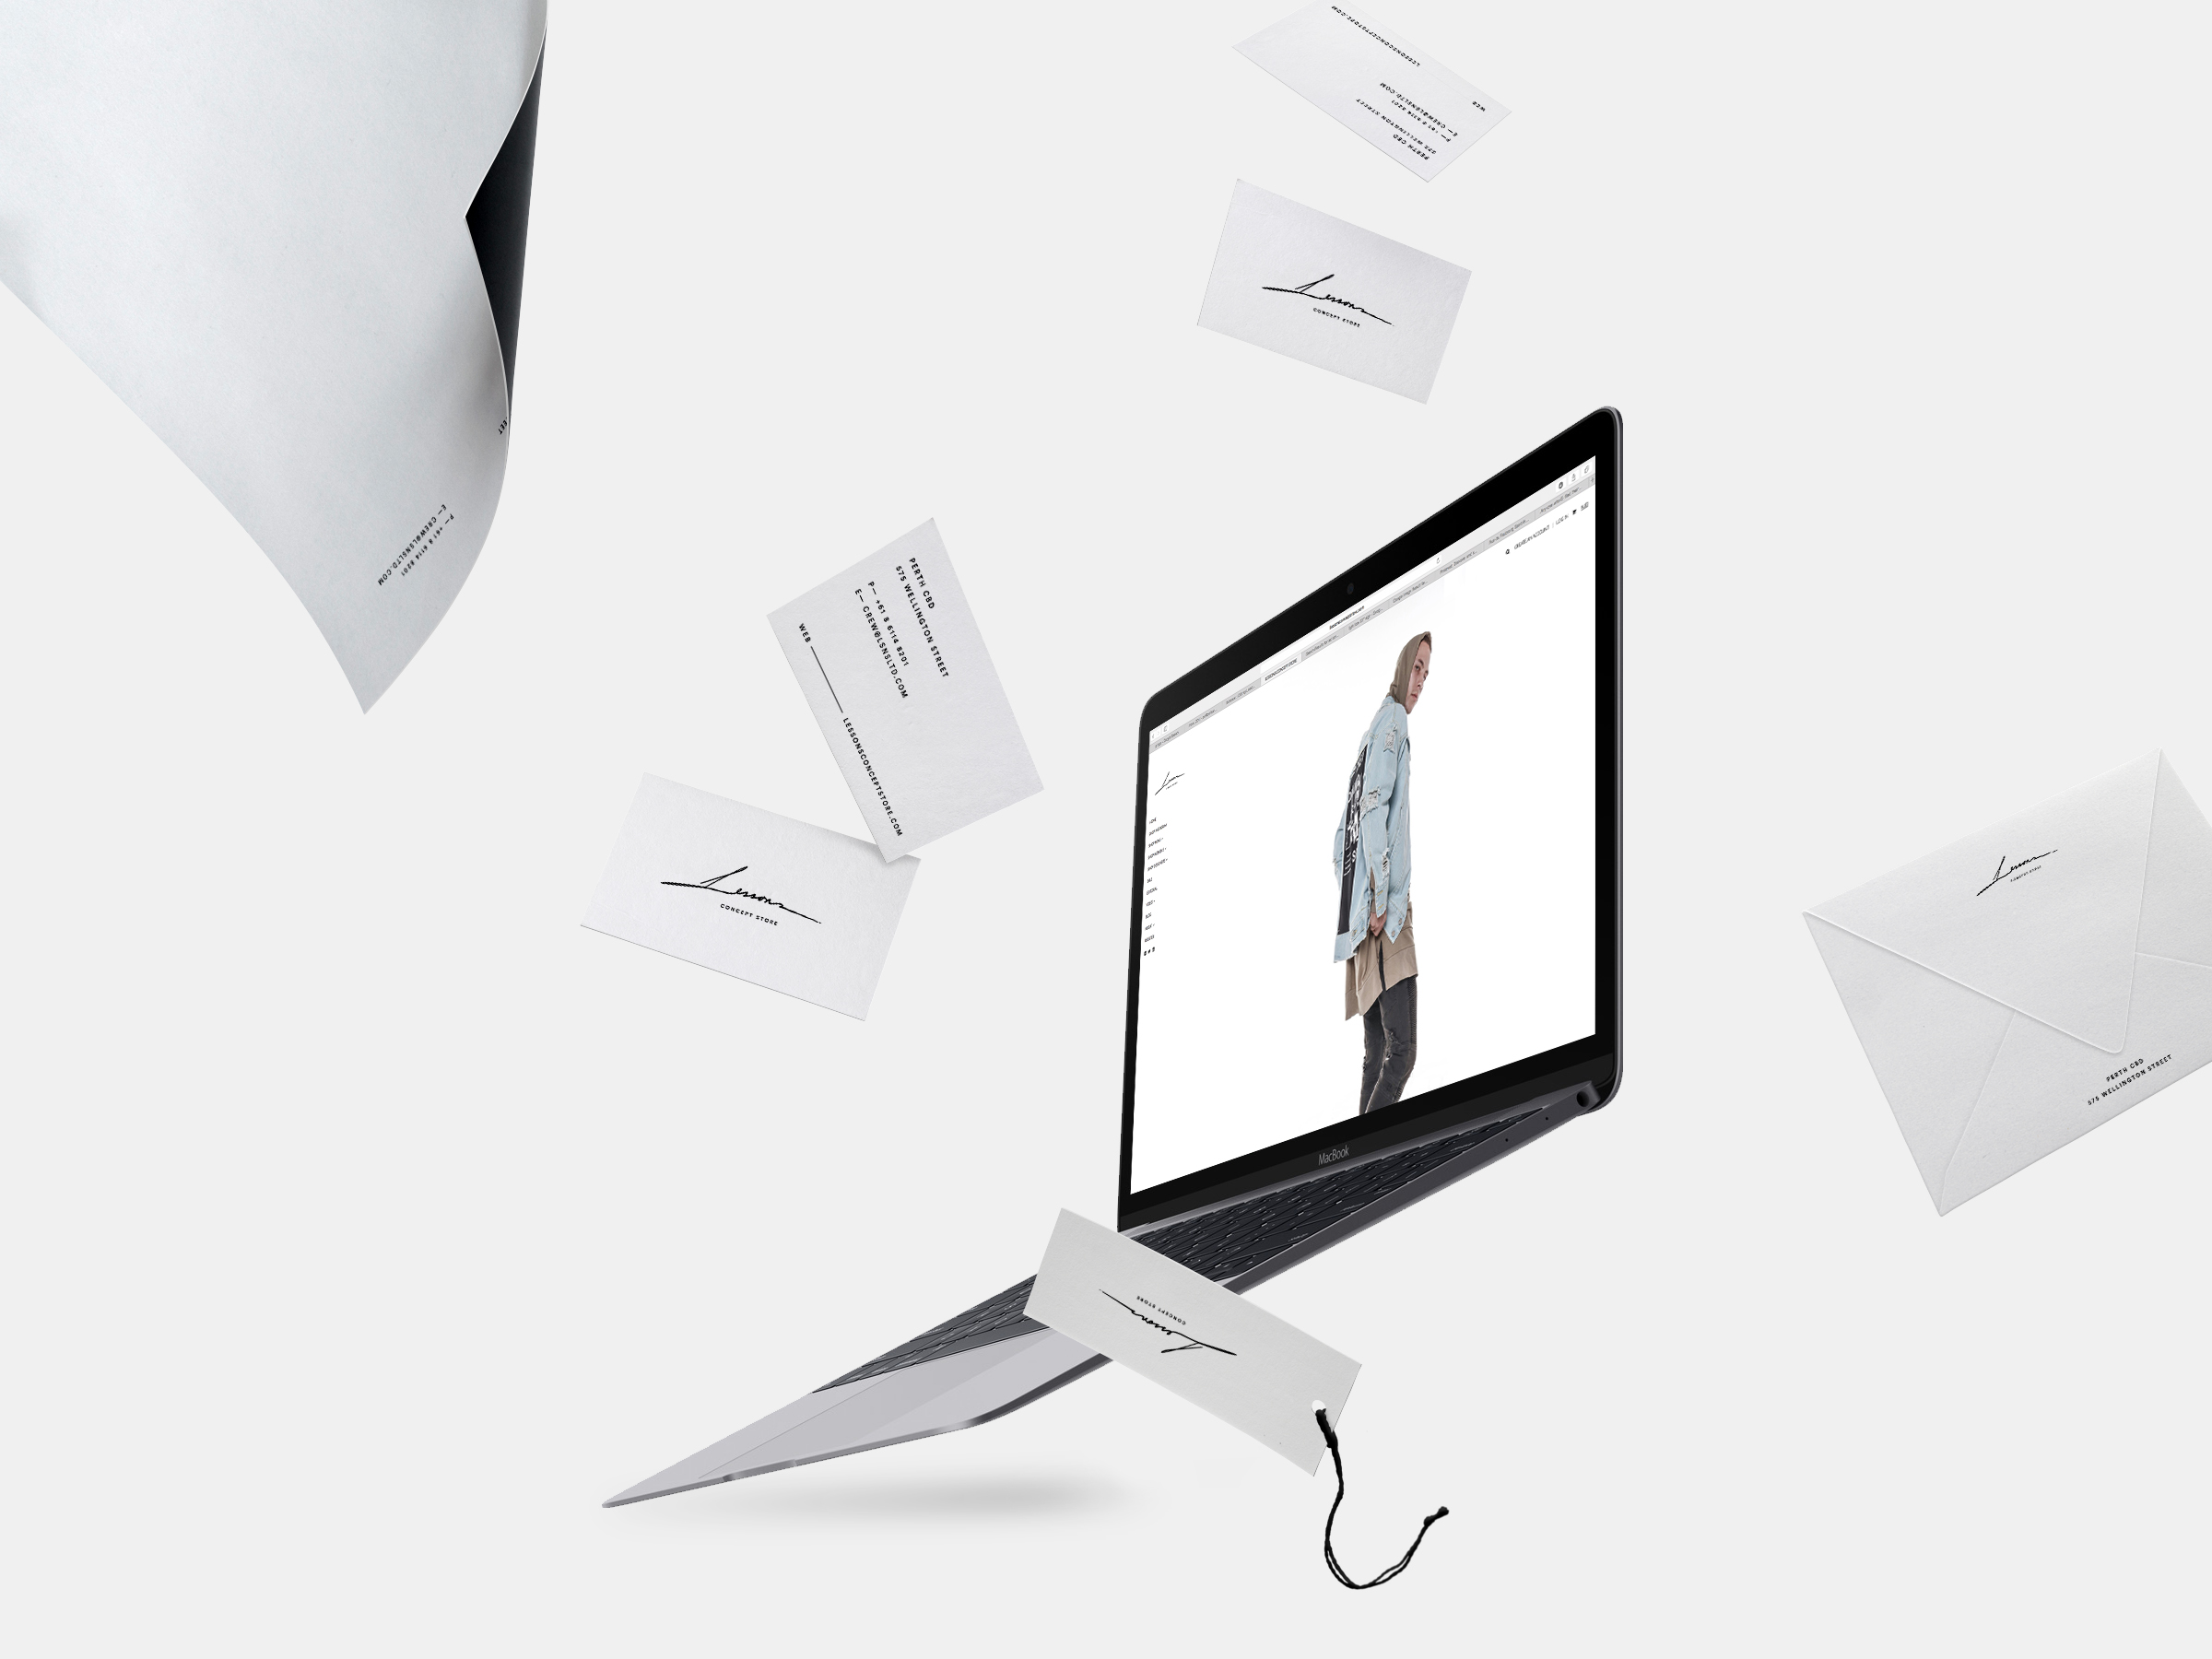 Flying+Macbook+Mockup.jpg